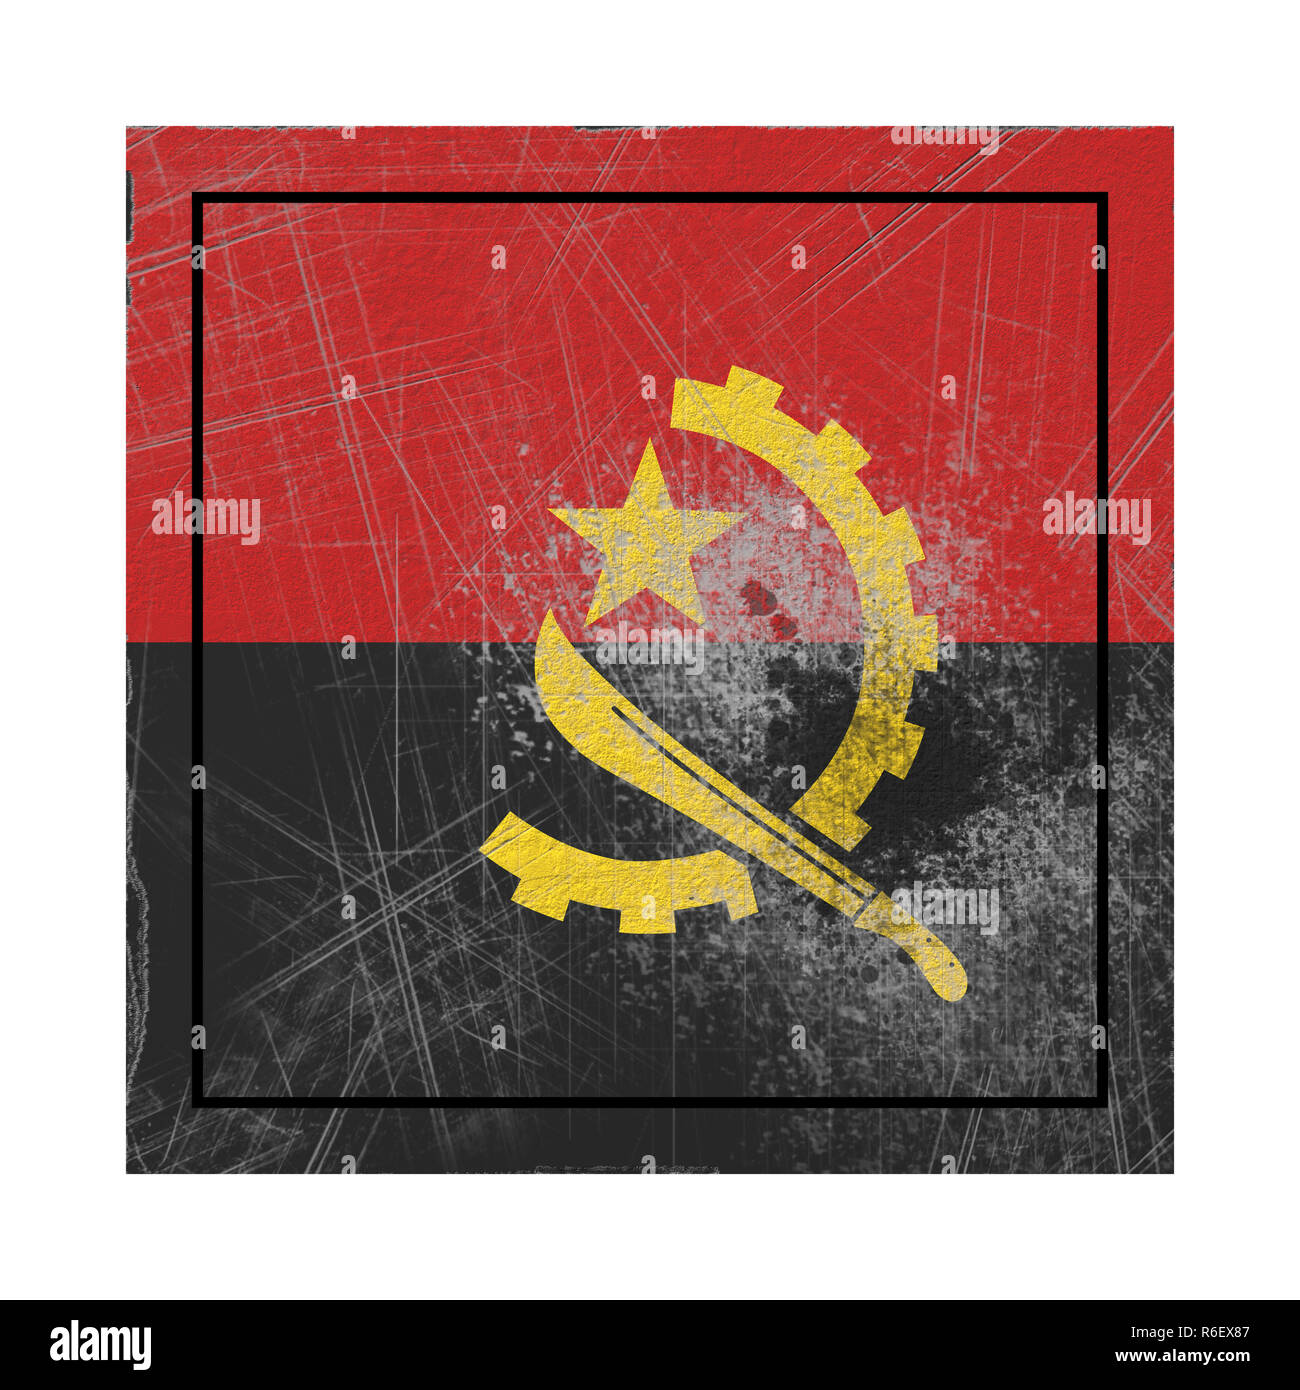 3d rendering of an old Angola flag in a concrete square - Stock Image